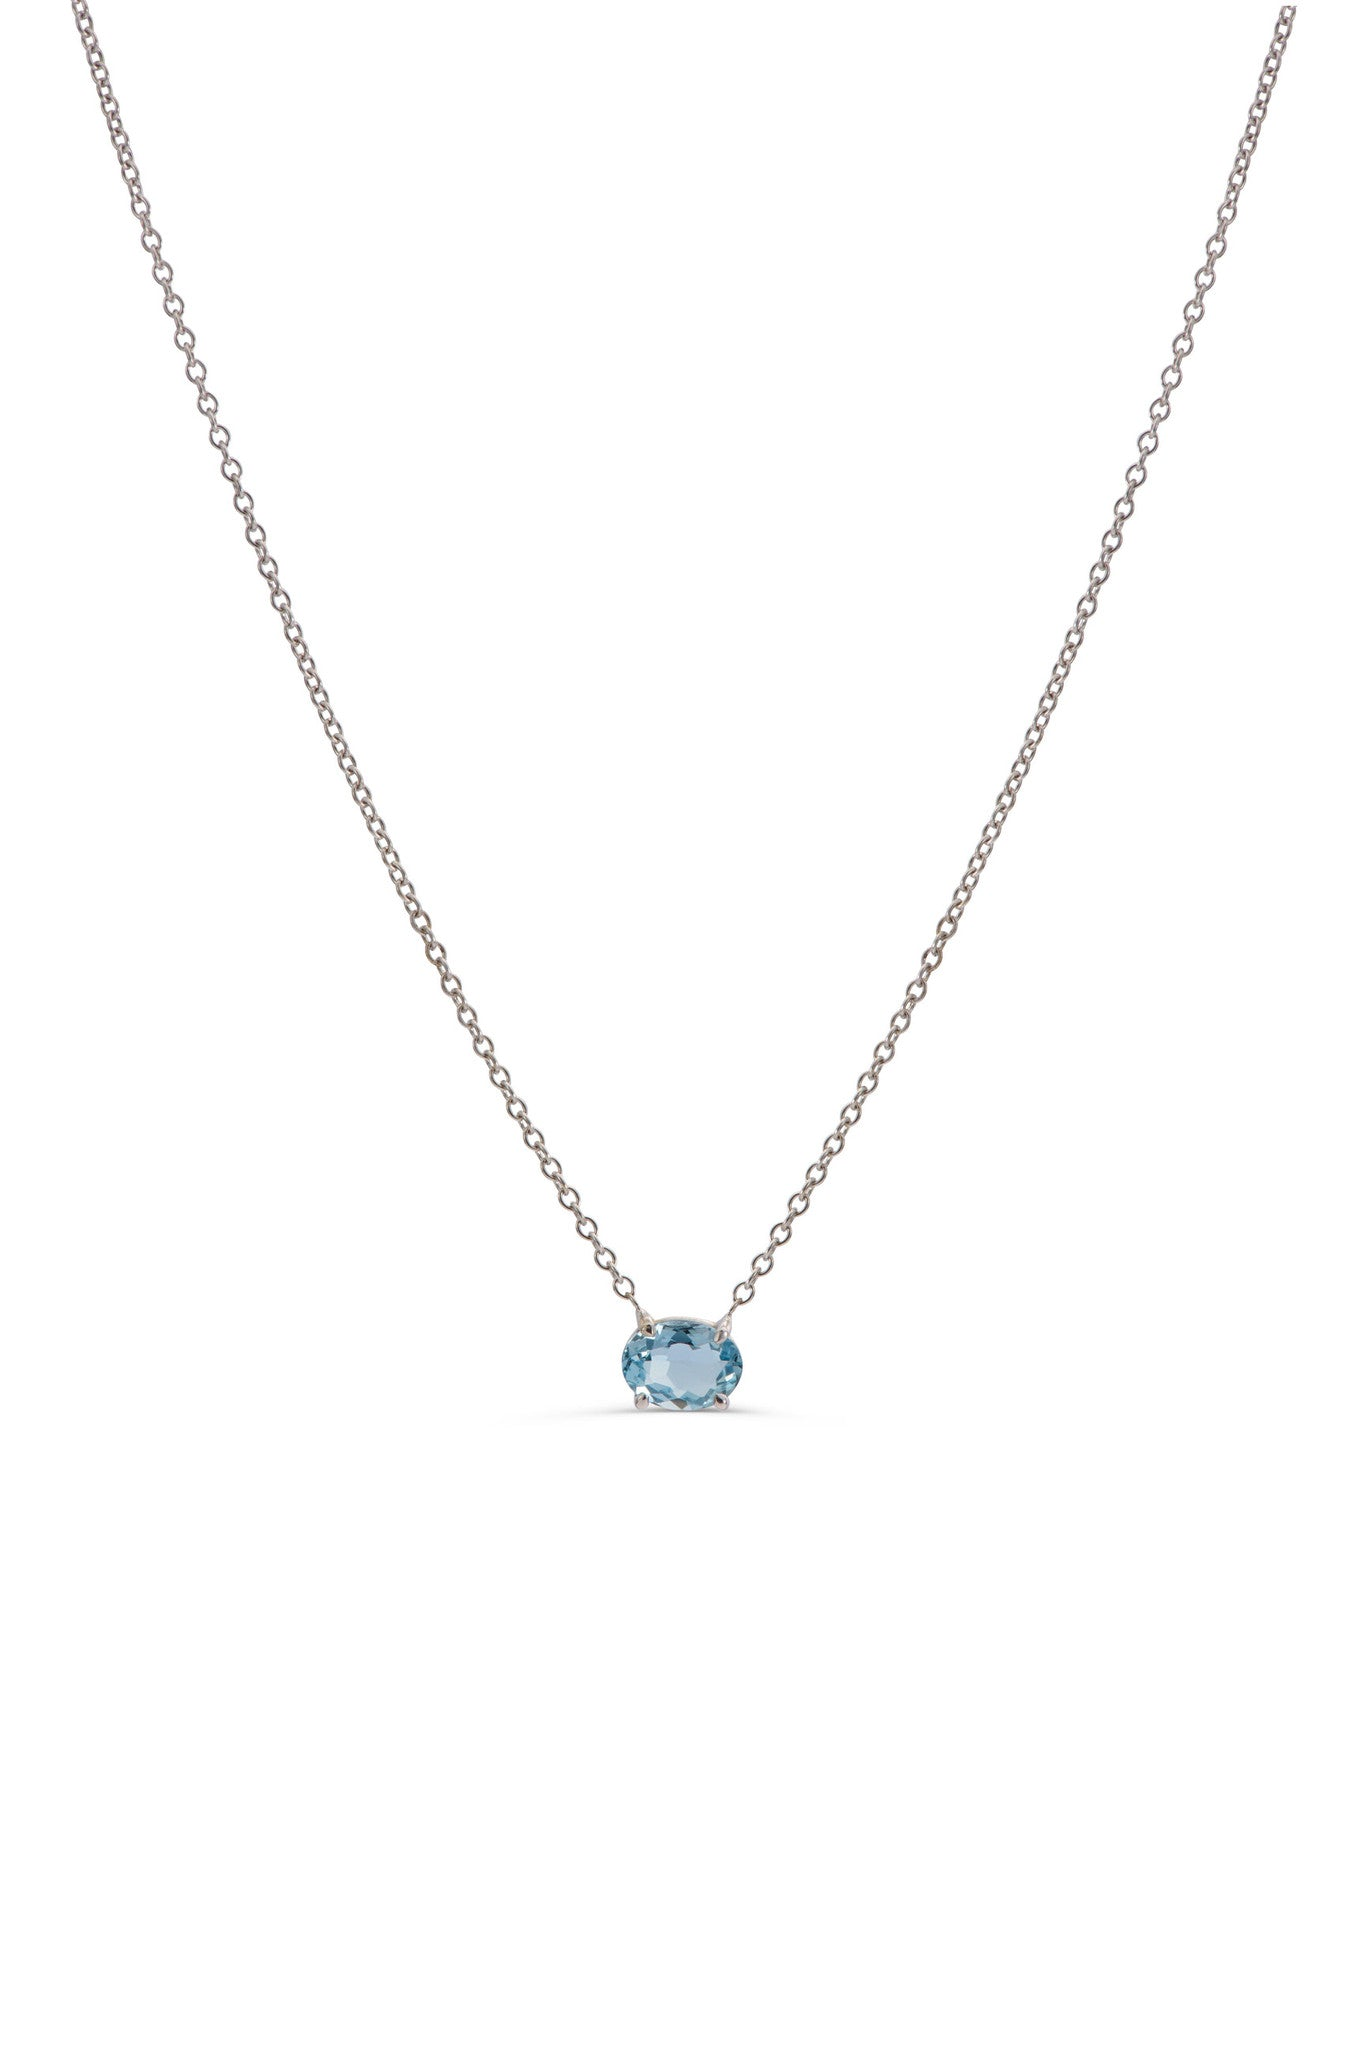 shop aquamarine gold oval white and diamond rounds pendant pendants stunning marine aqua